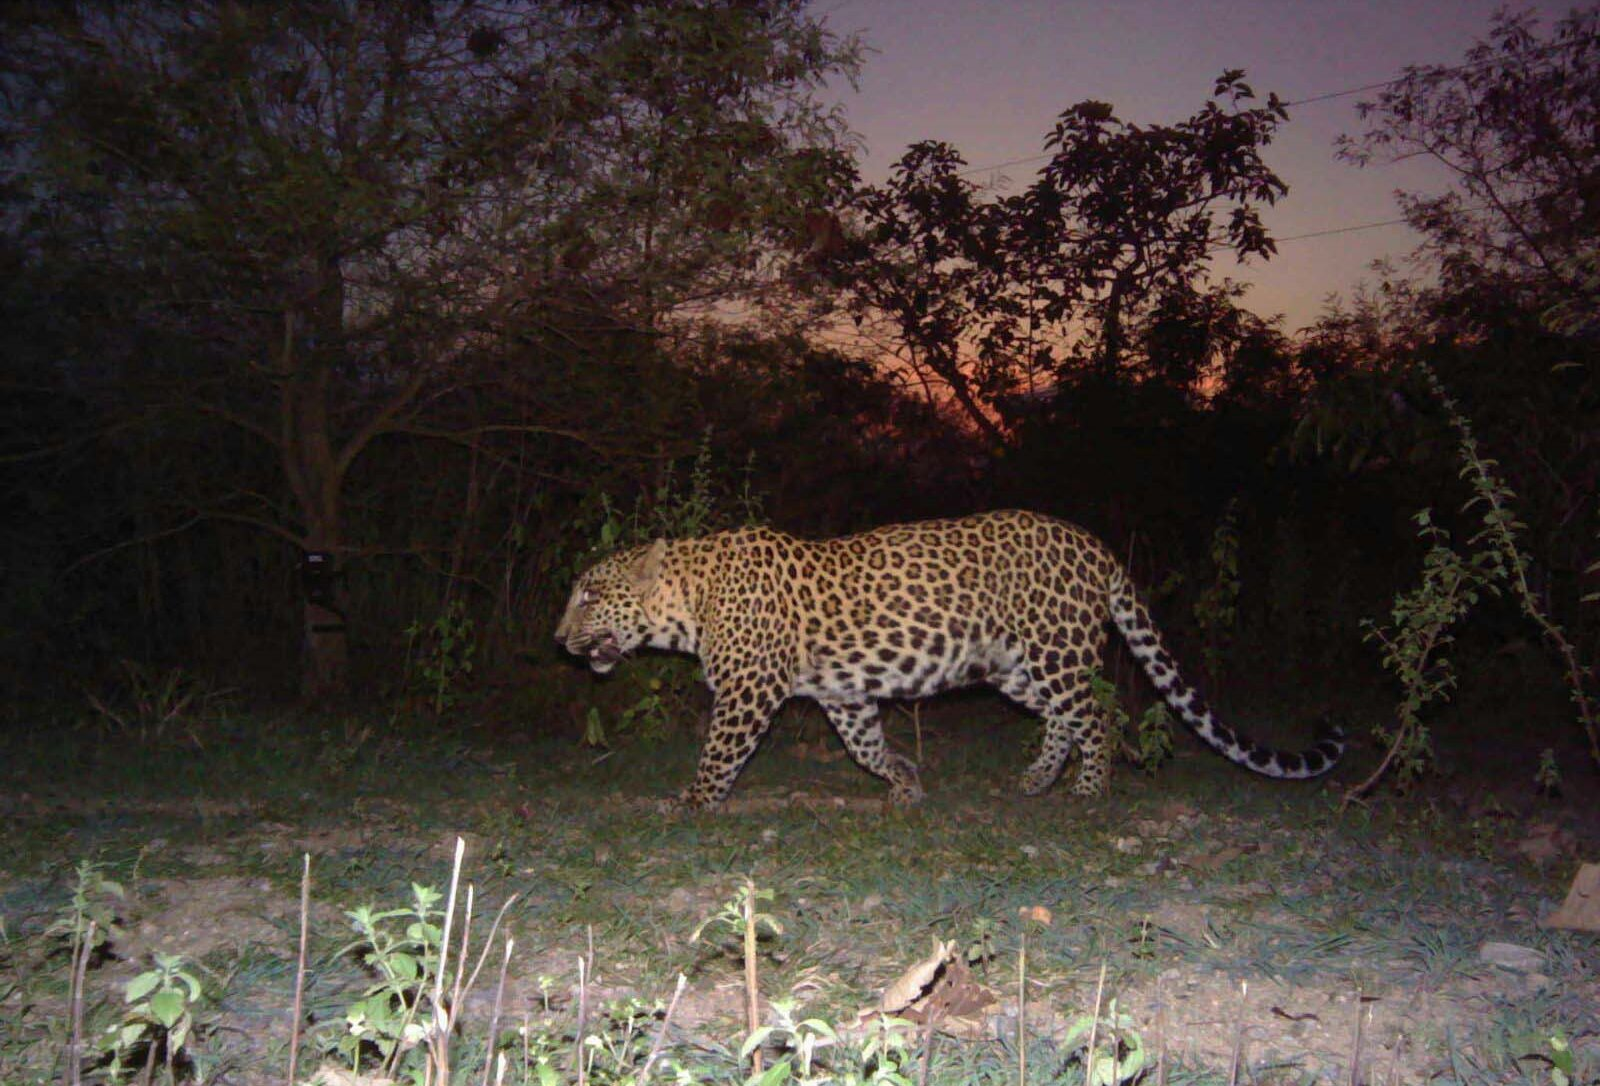 A big leopard at sunset crosses between a pair of camera traps.